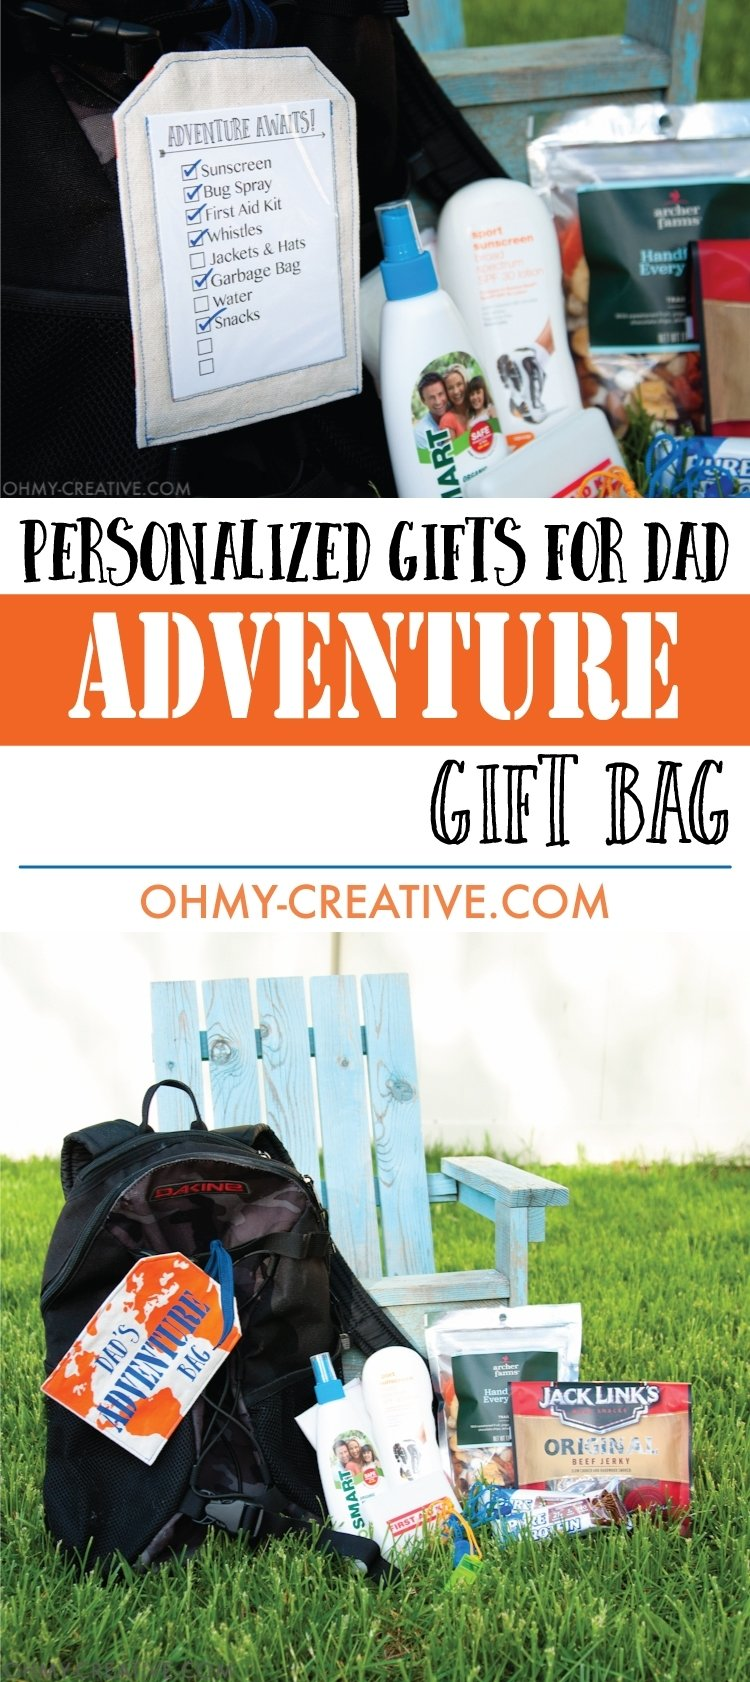 10 Great Gift Idea For Dad Who Has Everything personalized gifts for dad adventure gift bag dads creative and 2020